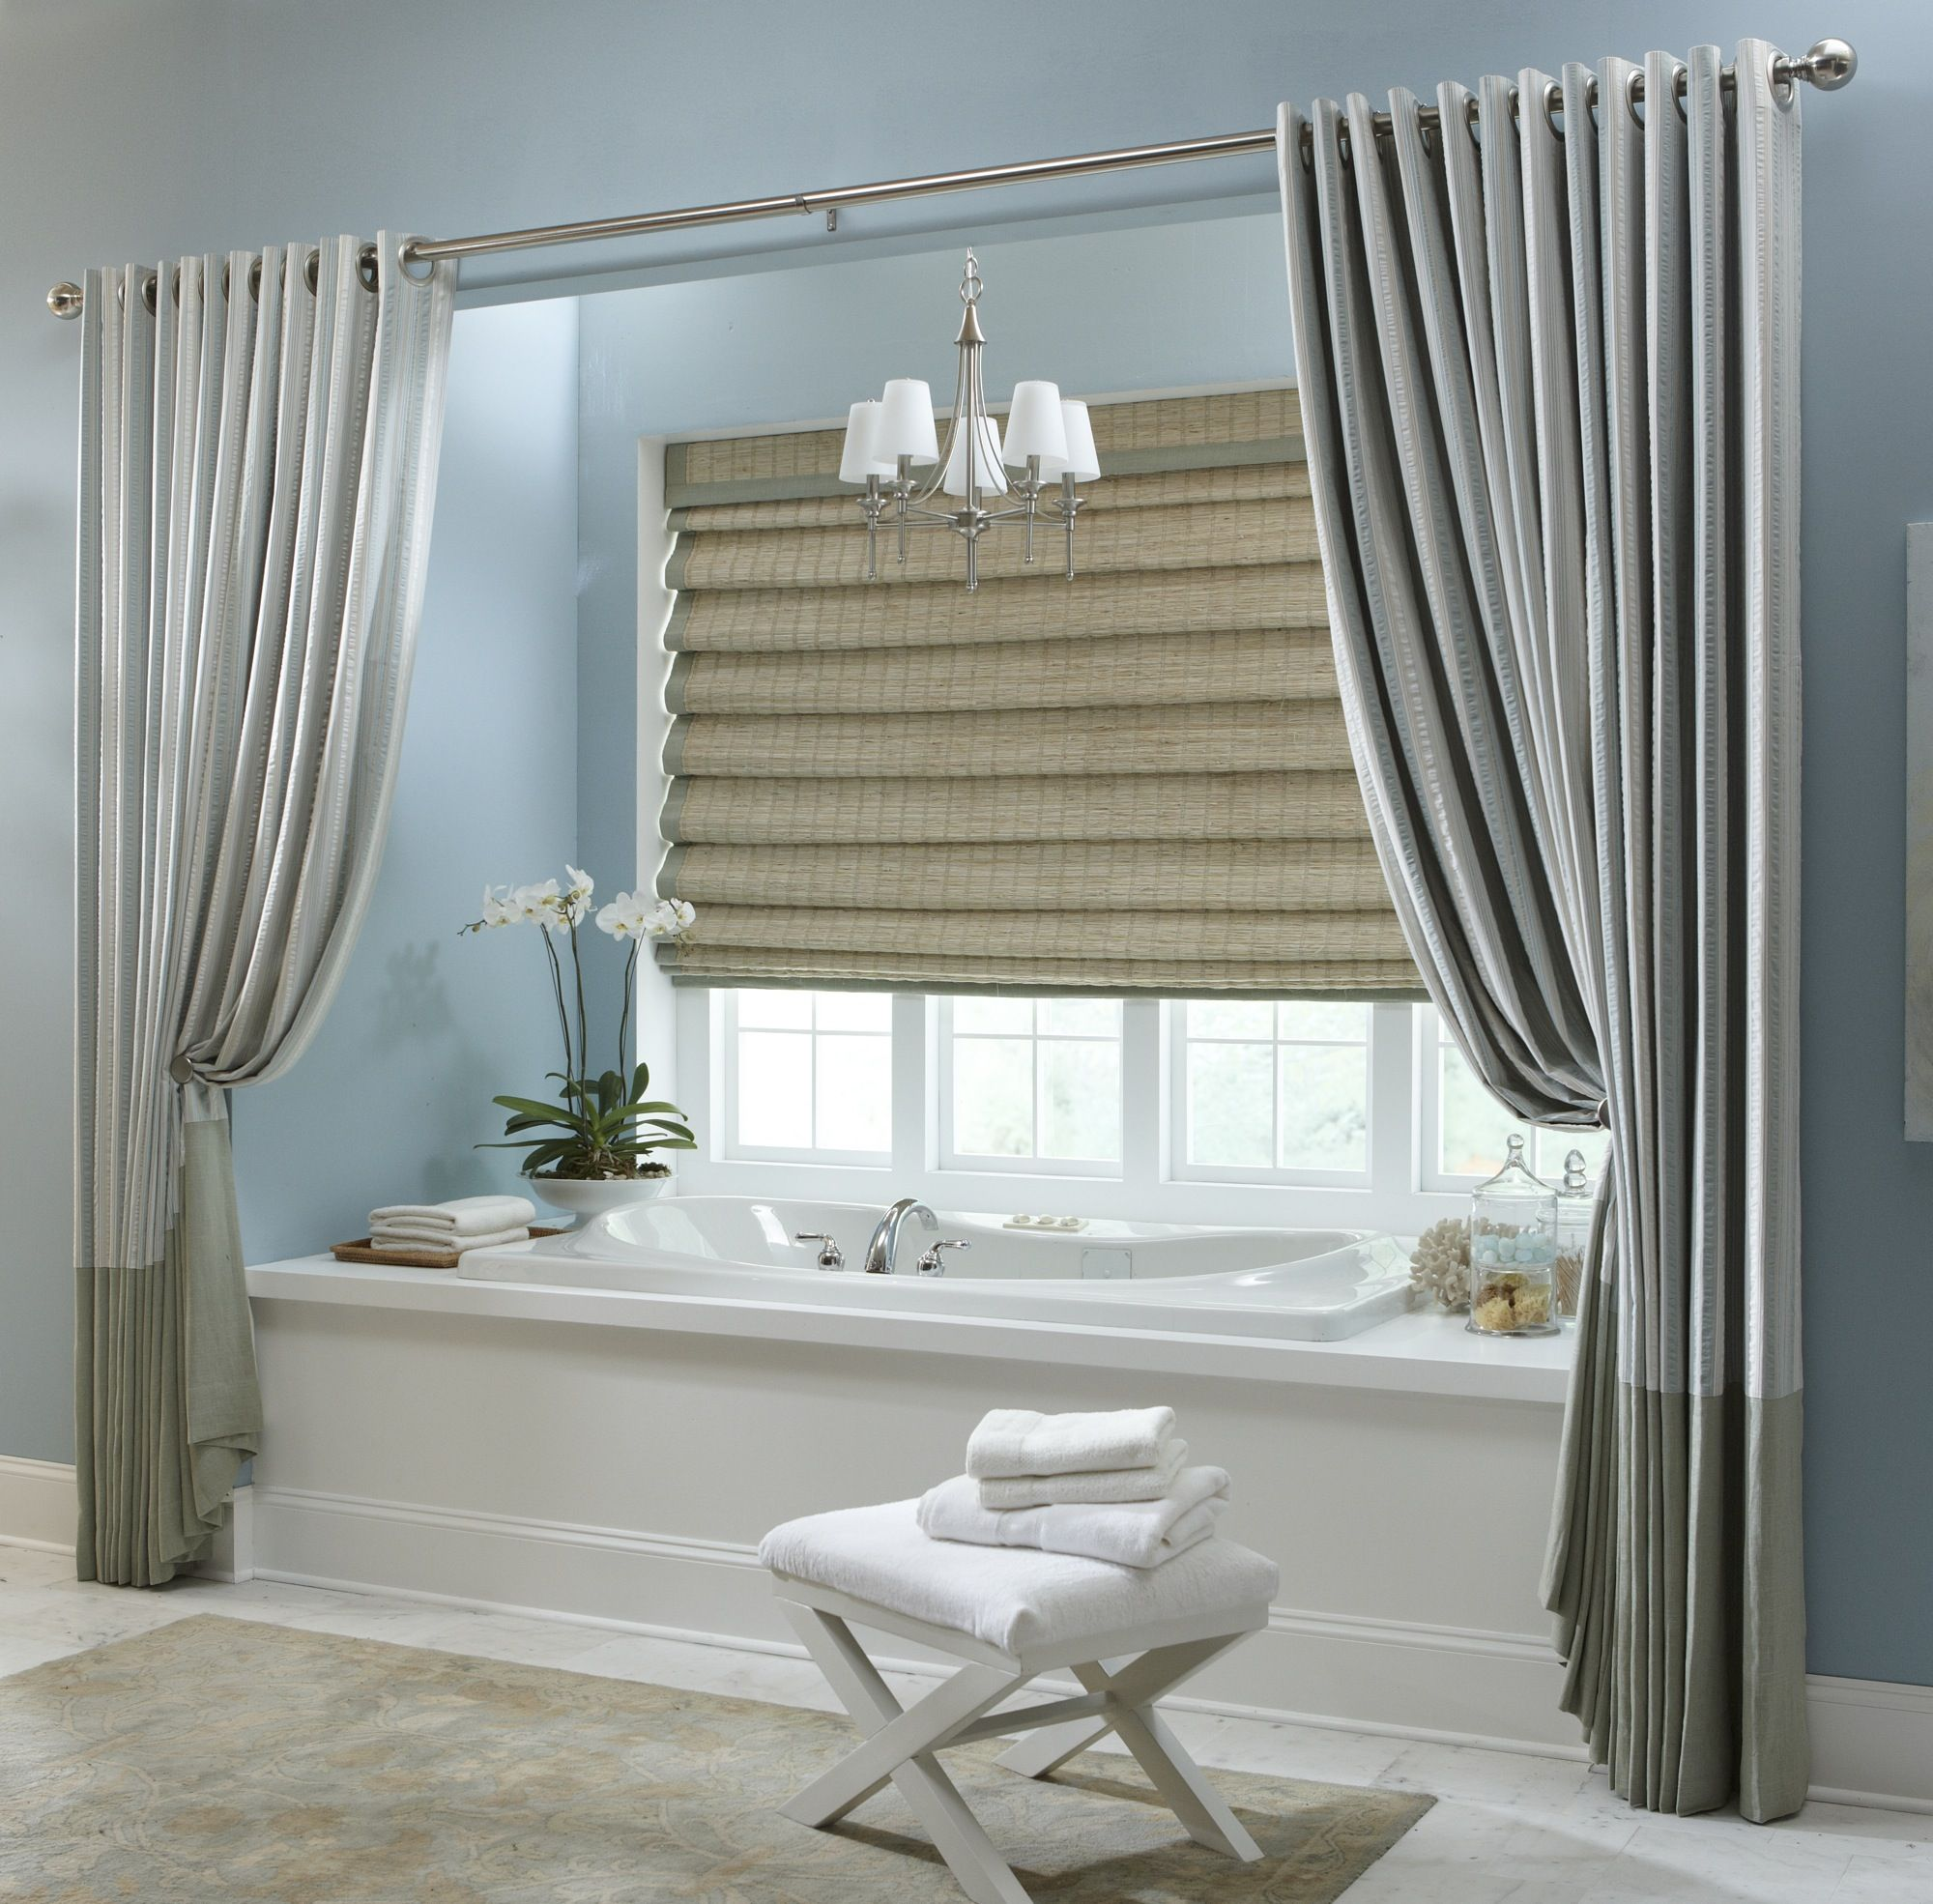 Add Some Privacy To Your Inhome Spa With These Beautiful - Blinds for bathroom window in shower for bathroom decor ideas